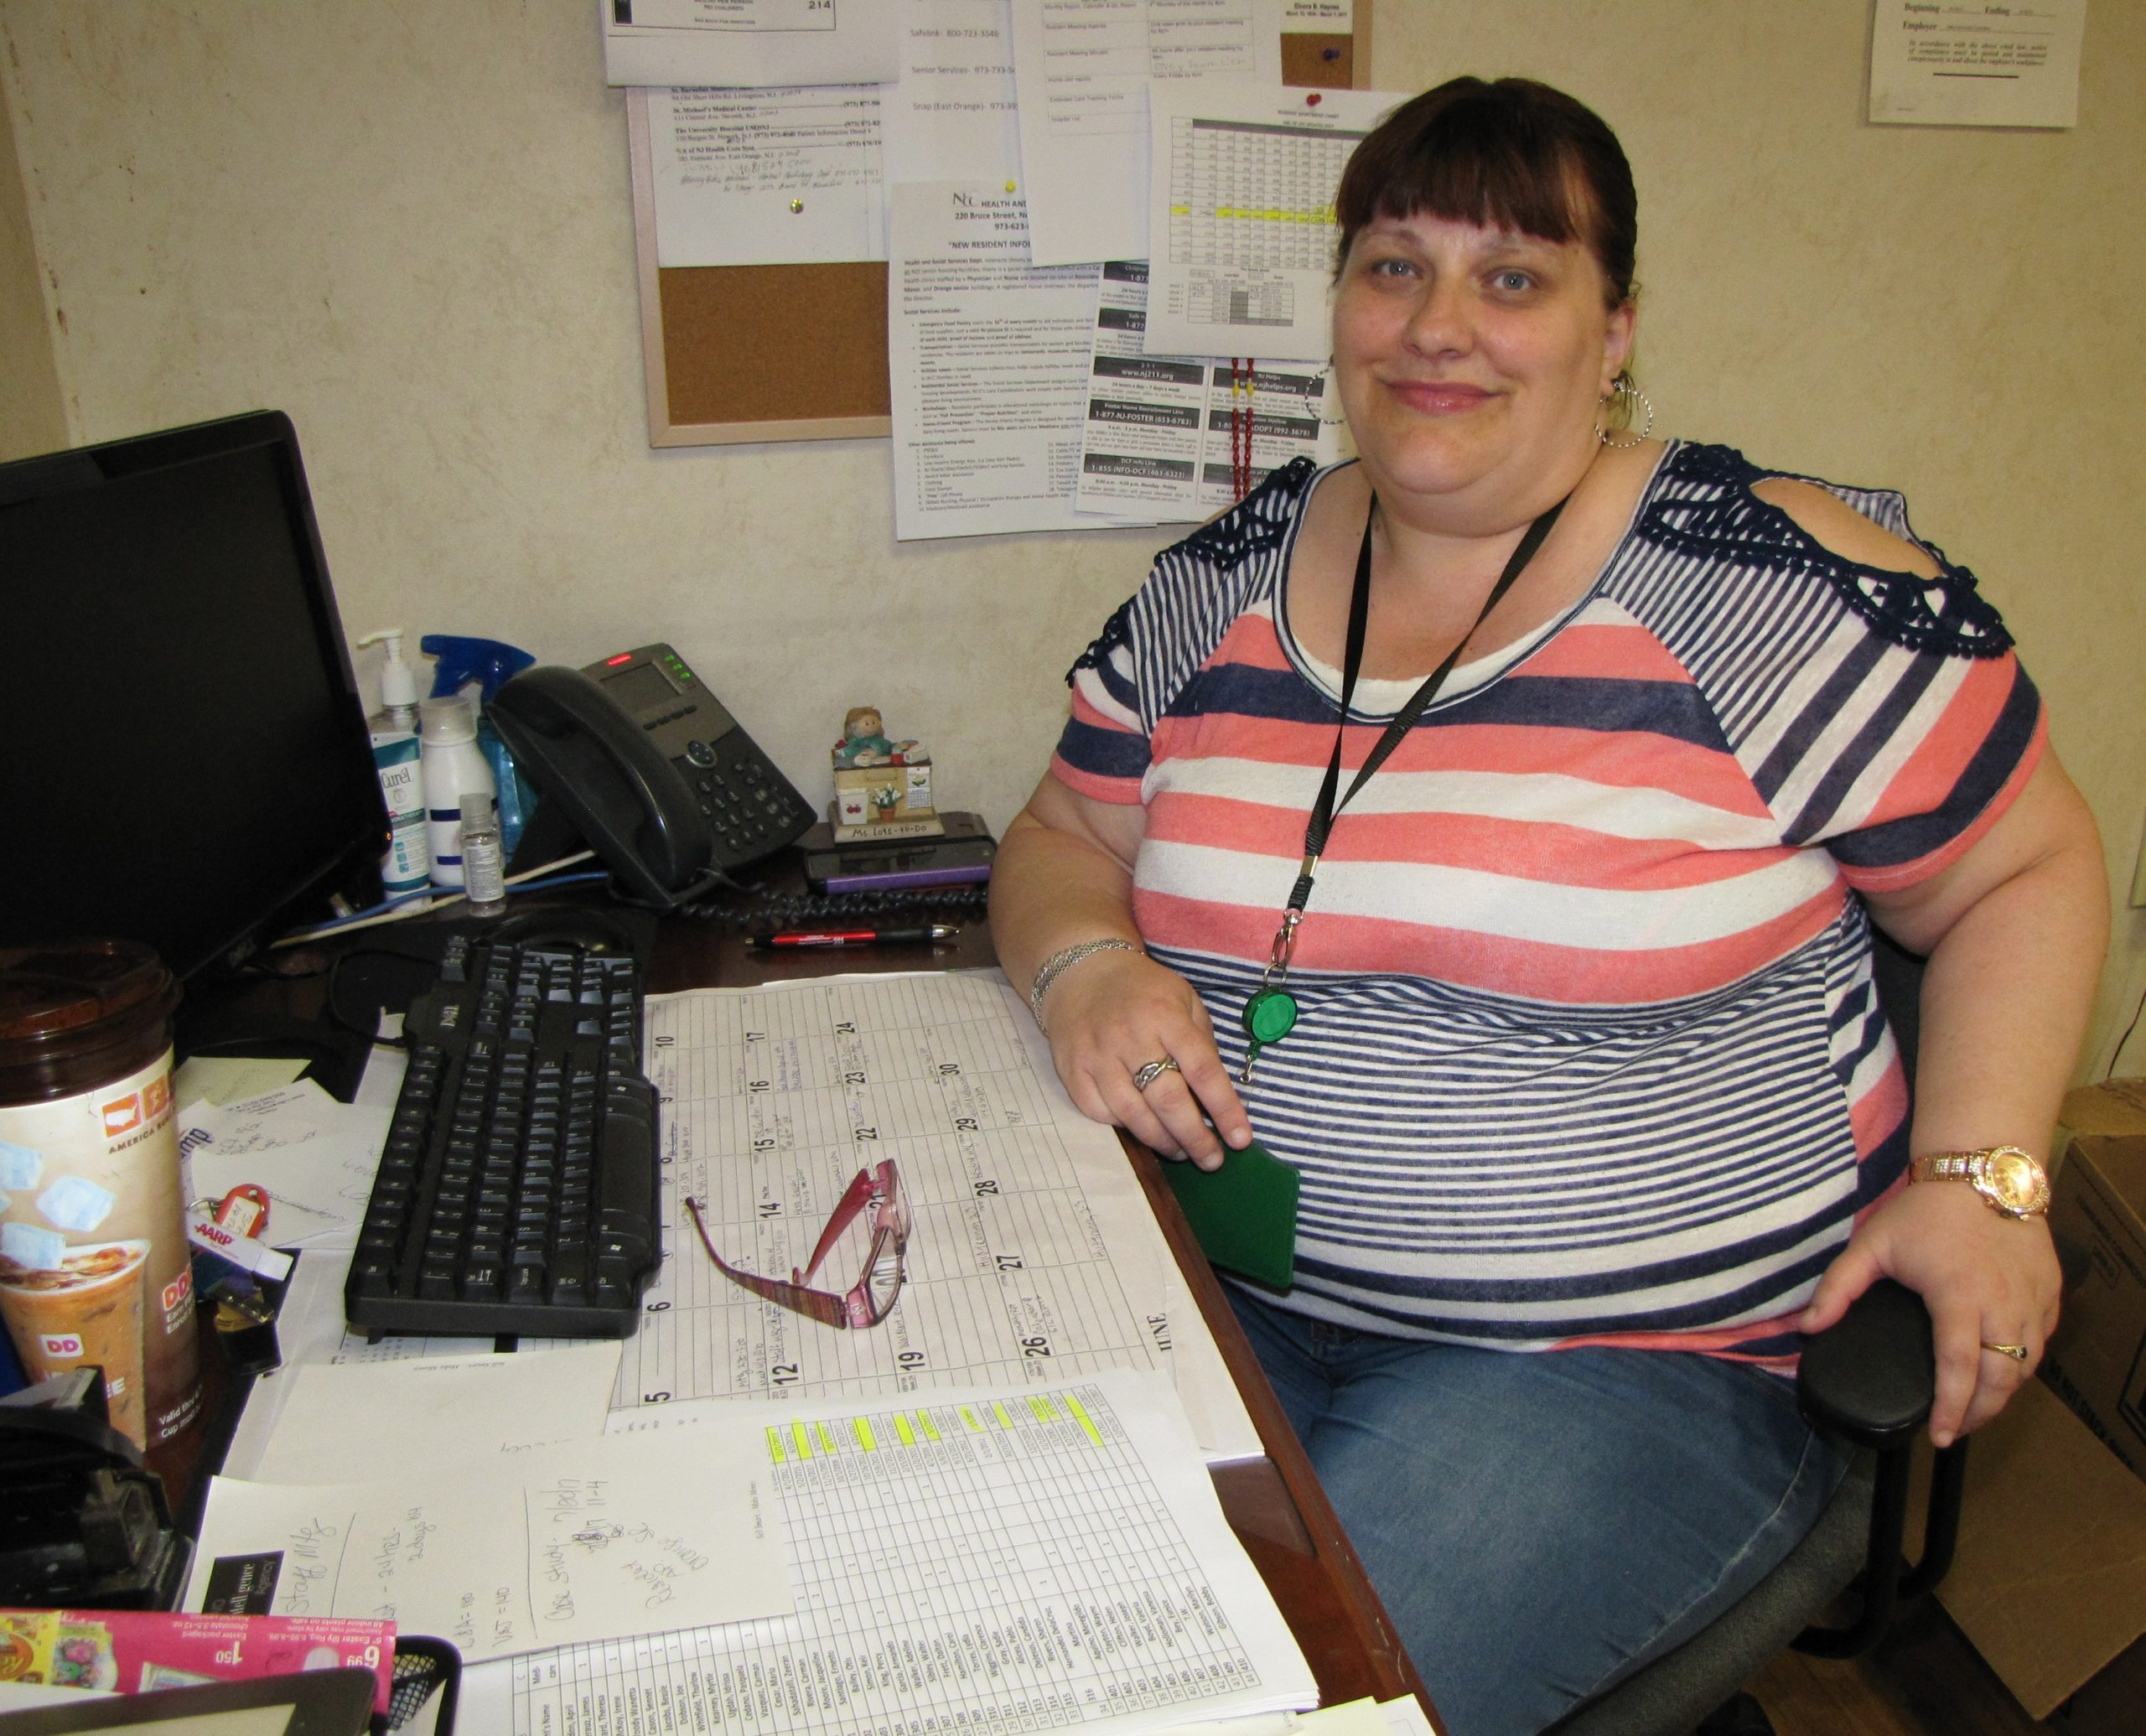 From NCC Volunteer To Full-Time Employee